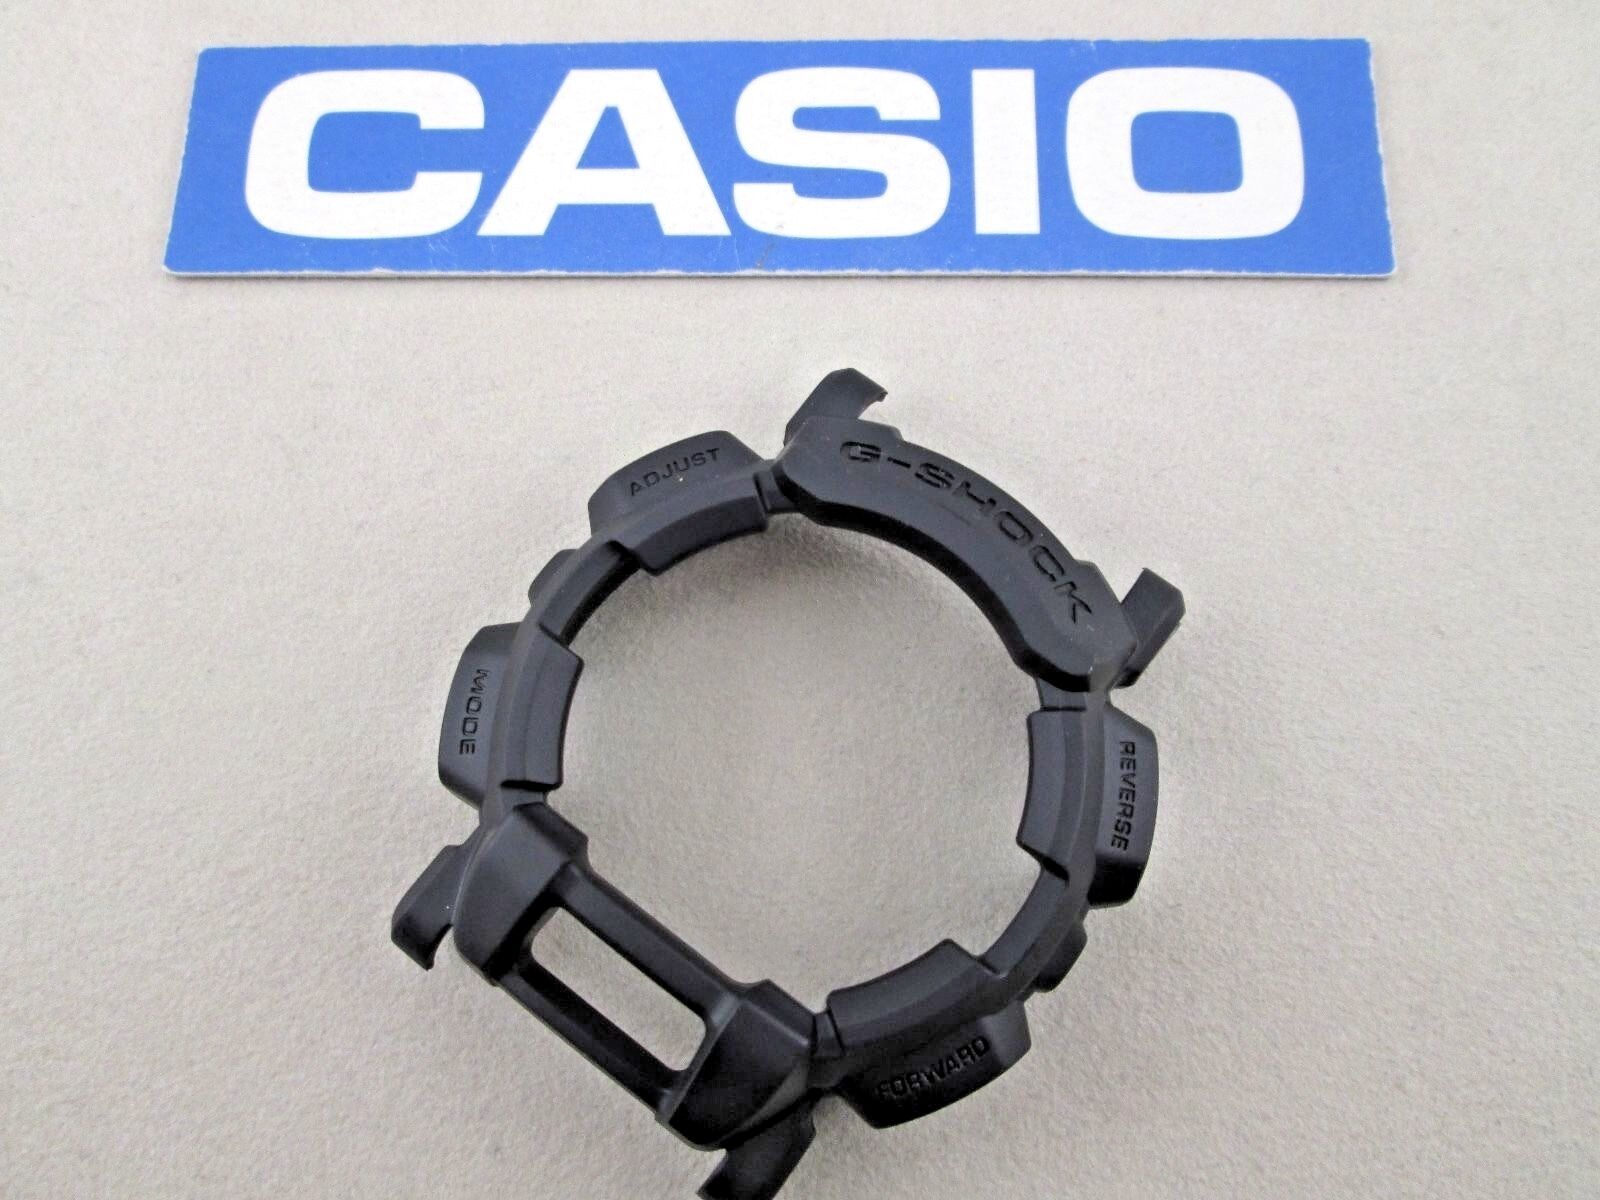 Genuine Casio G Shock Gd 400 400mb Black Resin Watch Case Cover Gshock Original Ga100mb 1adr Ga 100mb 1 Of 6only Available